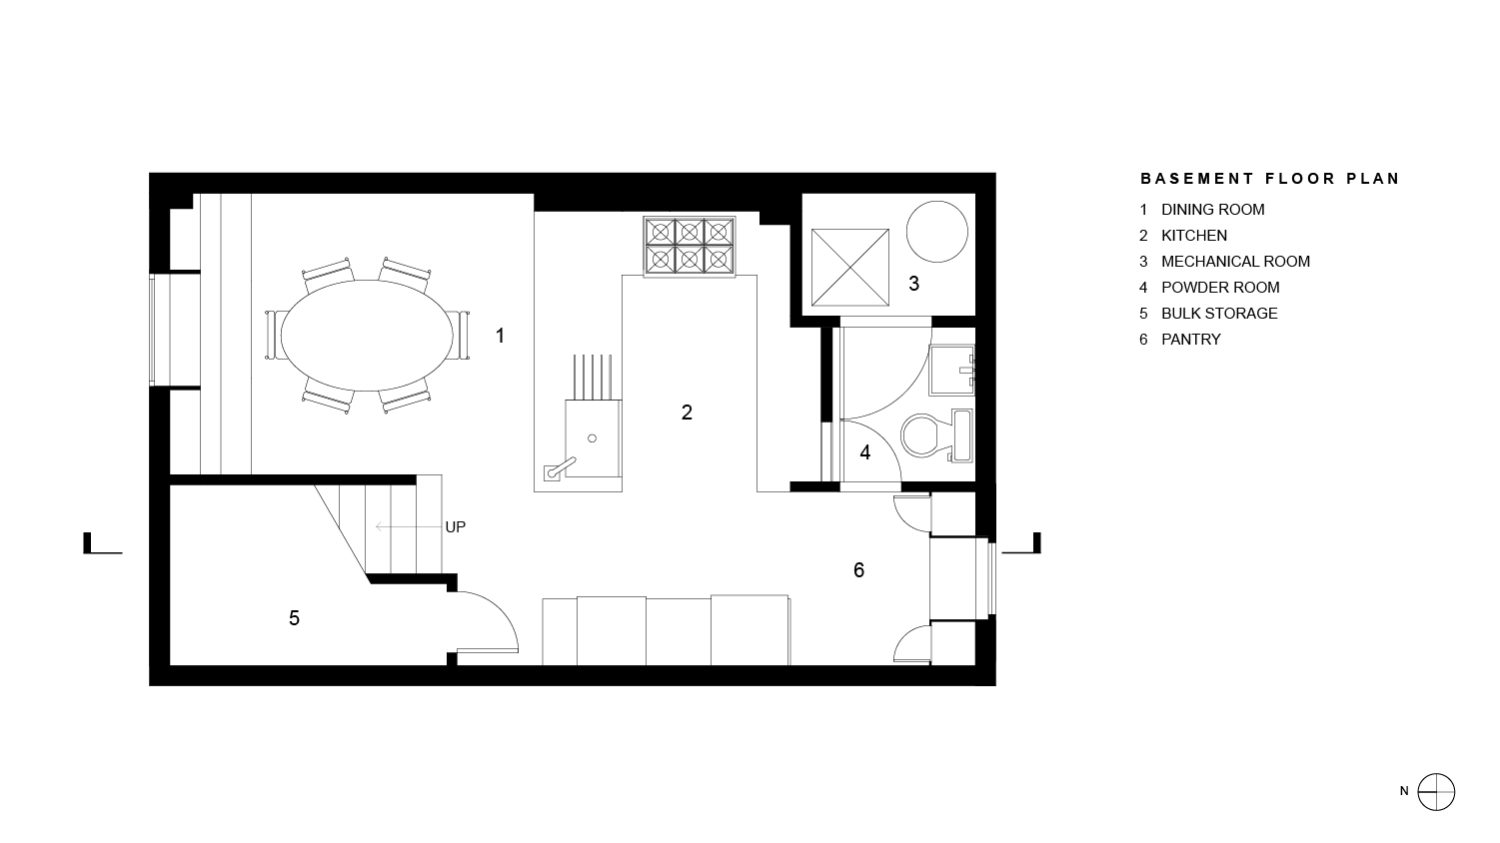 Wright Residence Basement Floor Plan